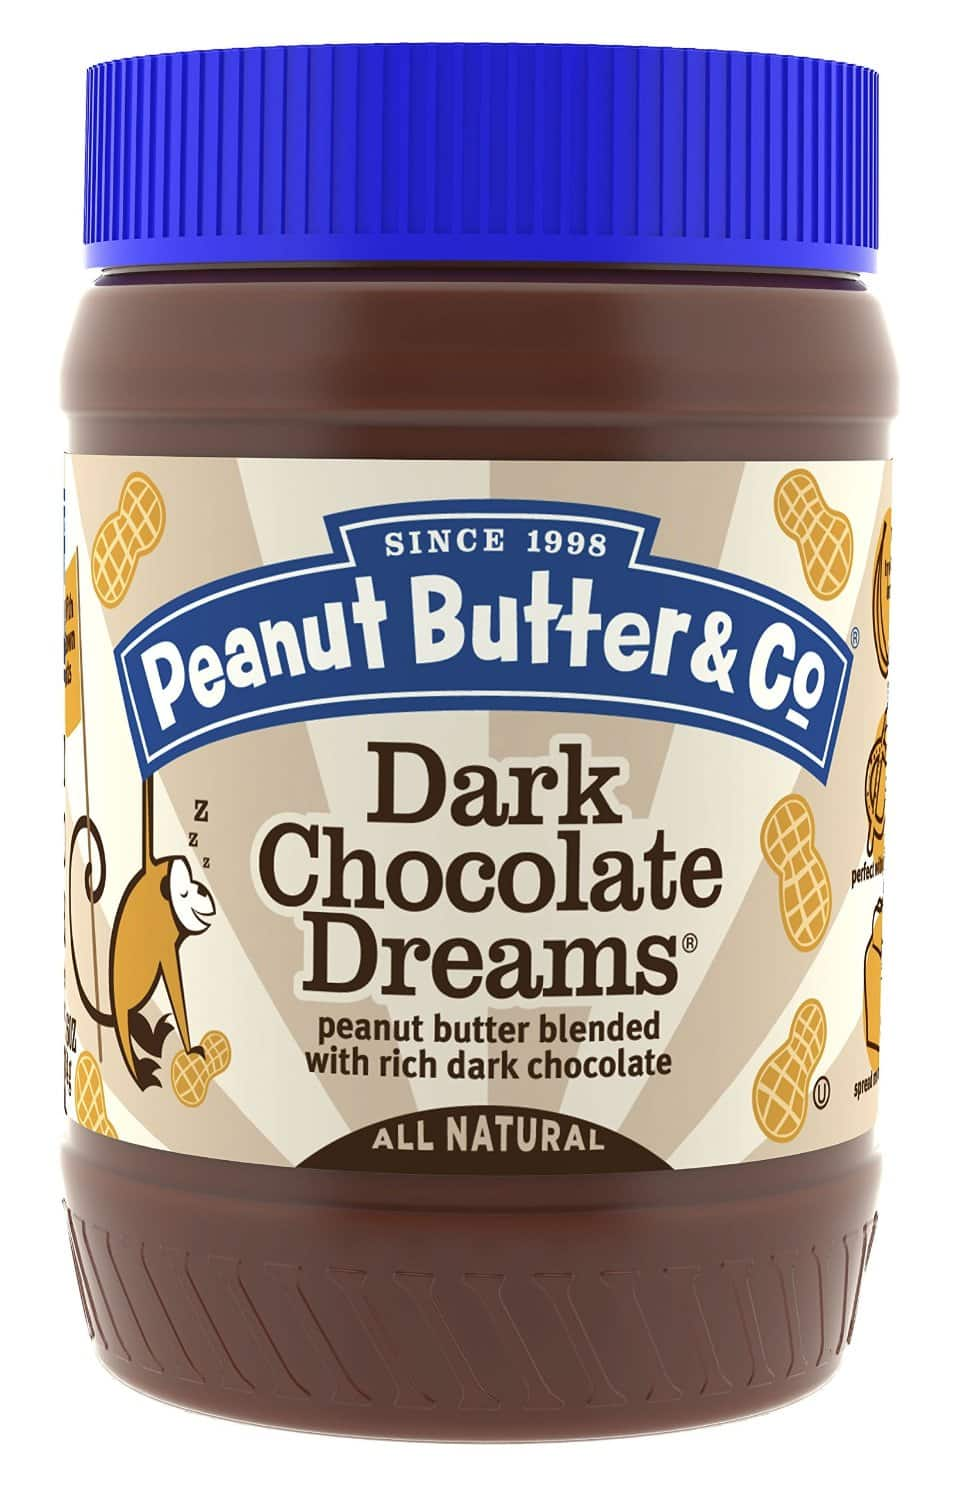 Peanut Butter & Co. (Various Flavors): 6-Pack  From $18 & More + Free Shipping